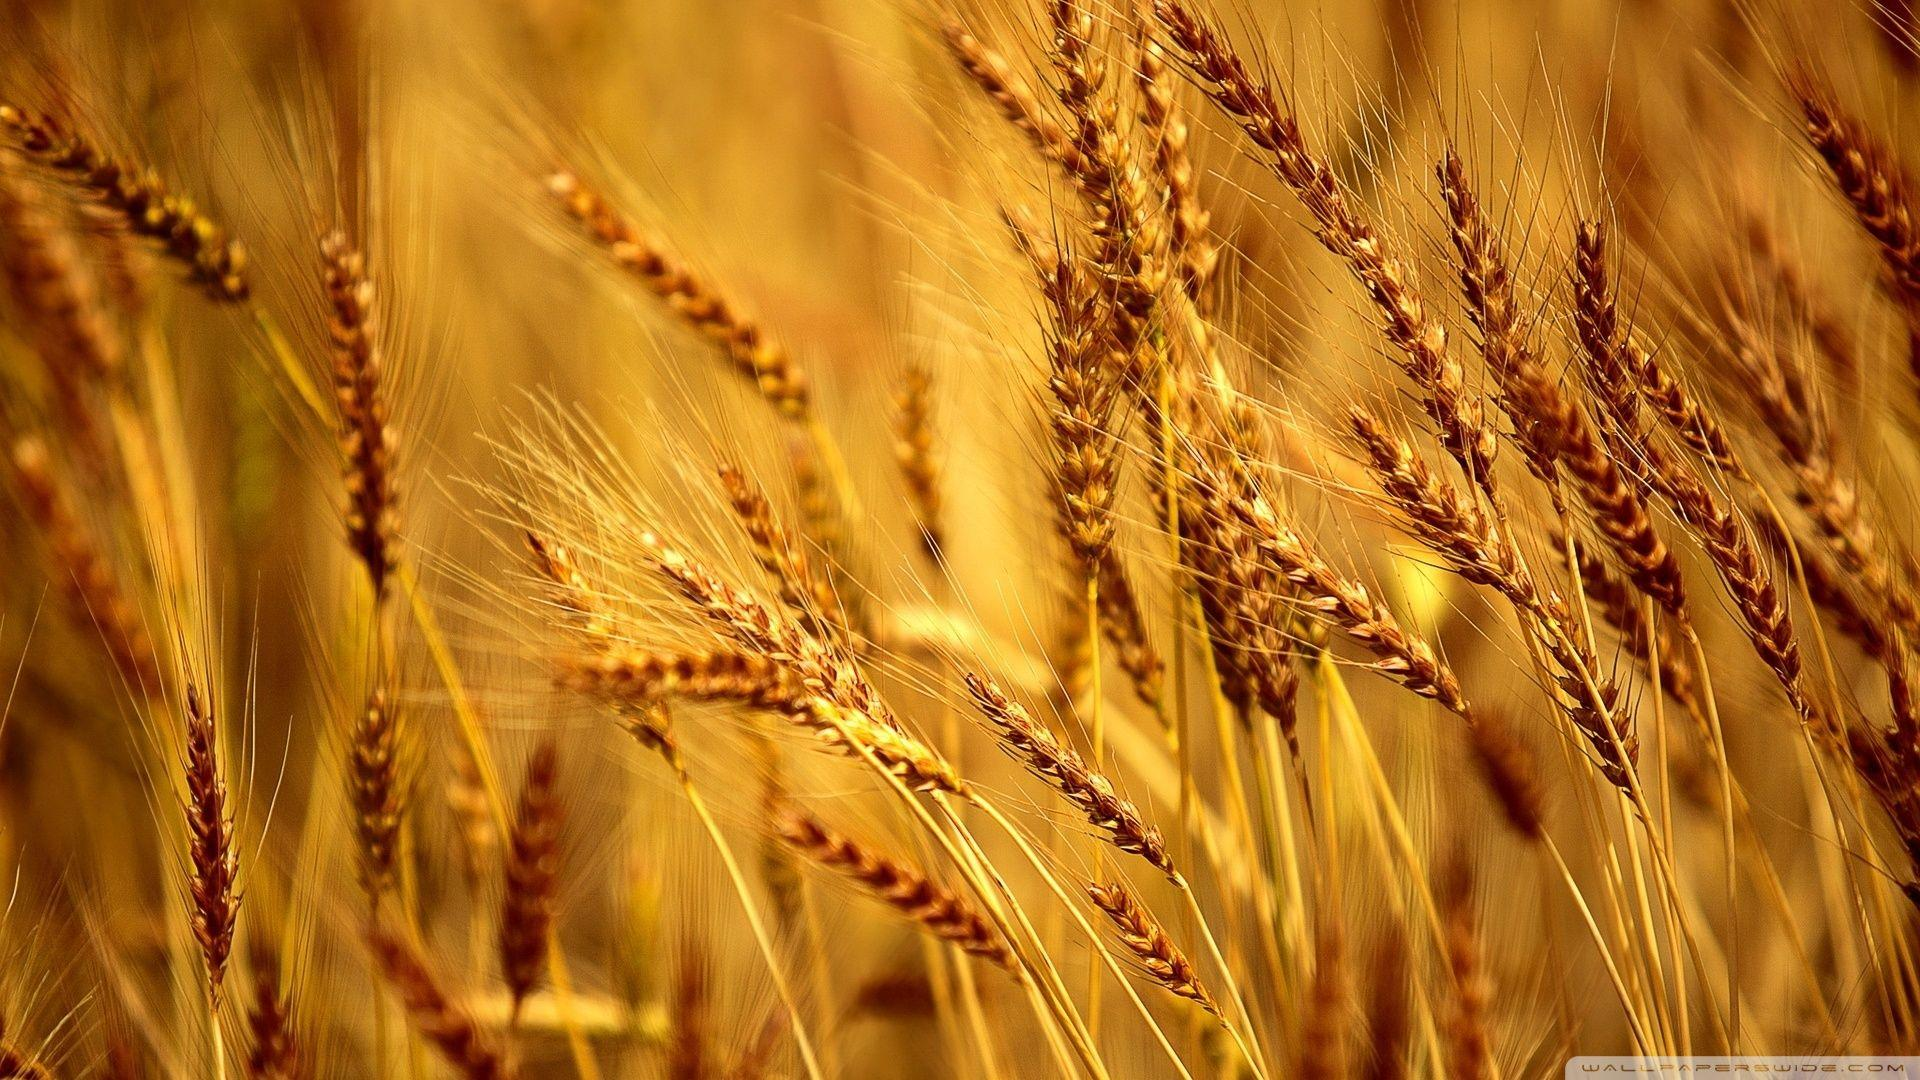 Nature Hd Wallpapers 1080p 3d Wheat Wallpapers Wallpaper Cave